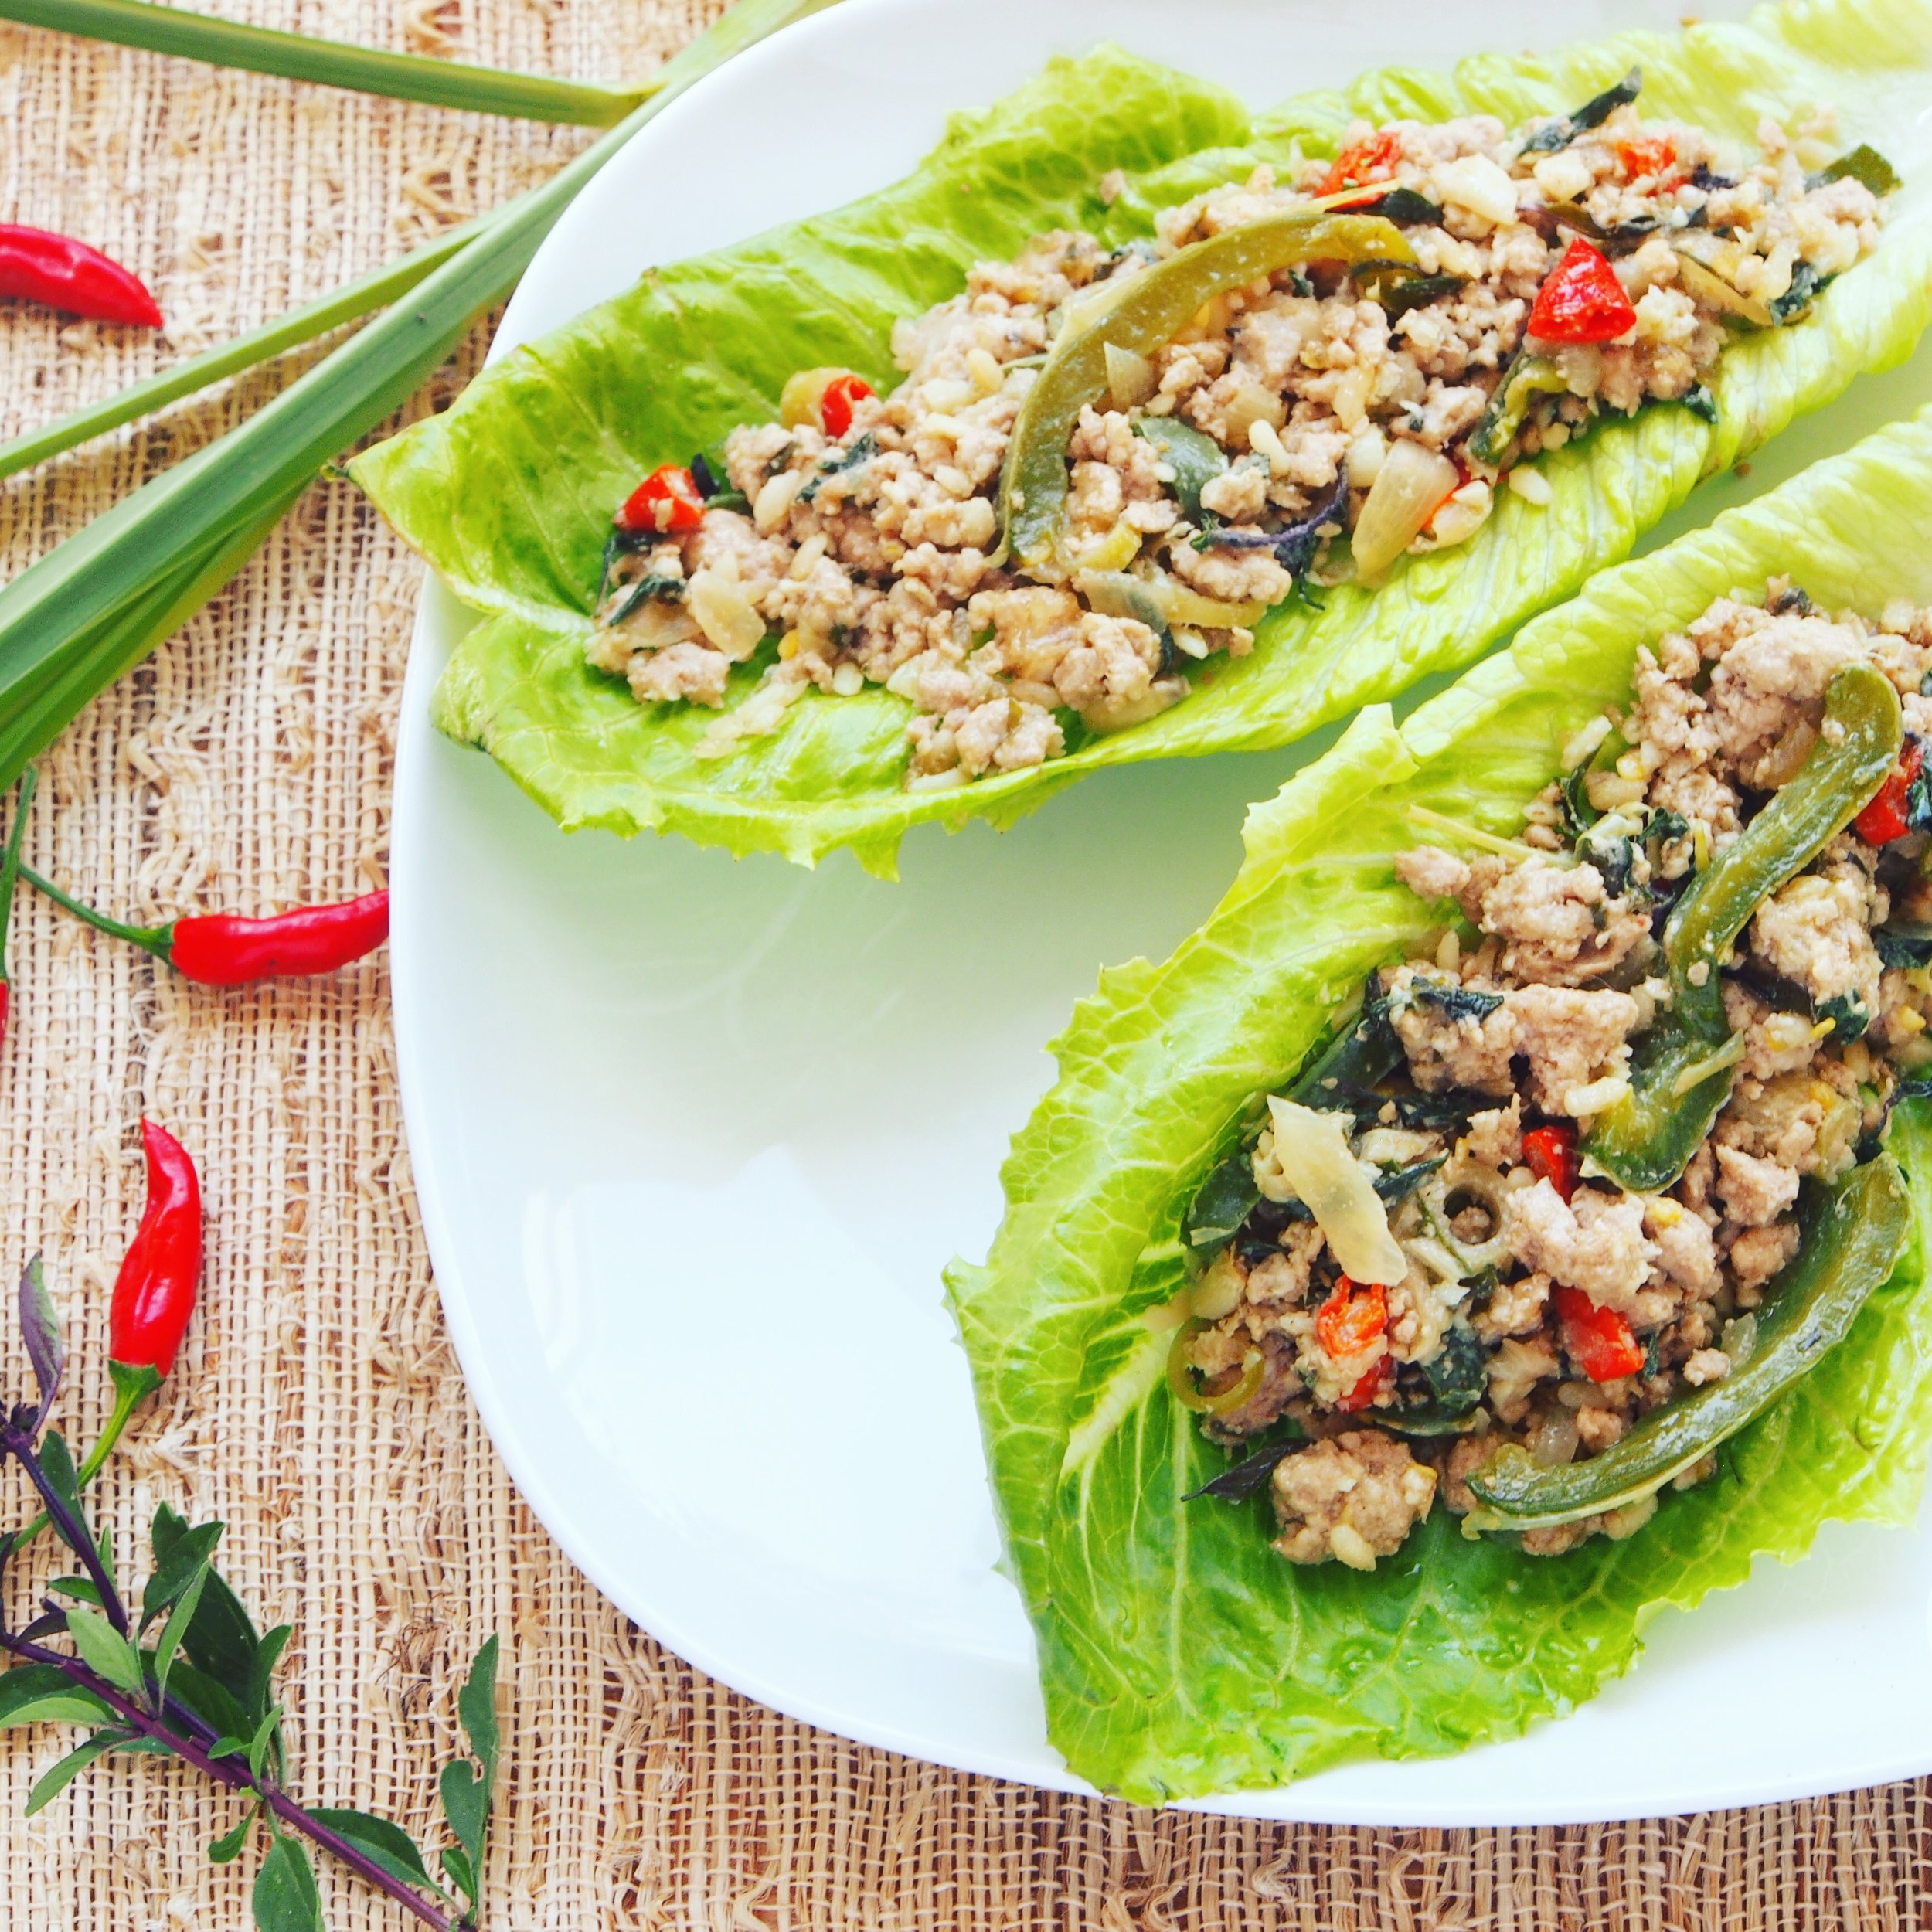 This Asian Lettuce Cup recipe is delicious! It's a quick stir-fry recipe that has a lot of Indonesian ingredients, including galangal, lemongrass, tamarind, and birdseye chilies. One of my favorite Indonesian recipes, you can make it as spicy as you like! It's also a quick recipe ready in 20 minutes or less!